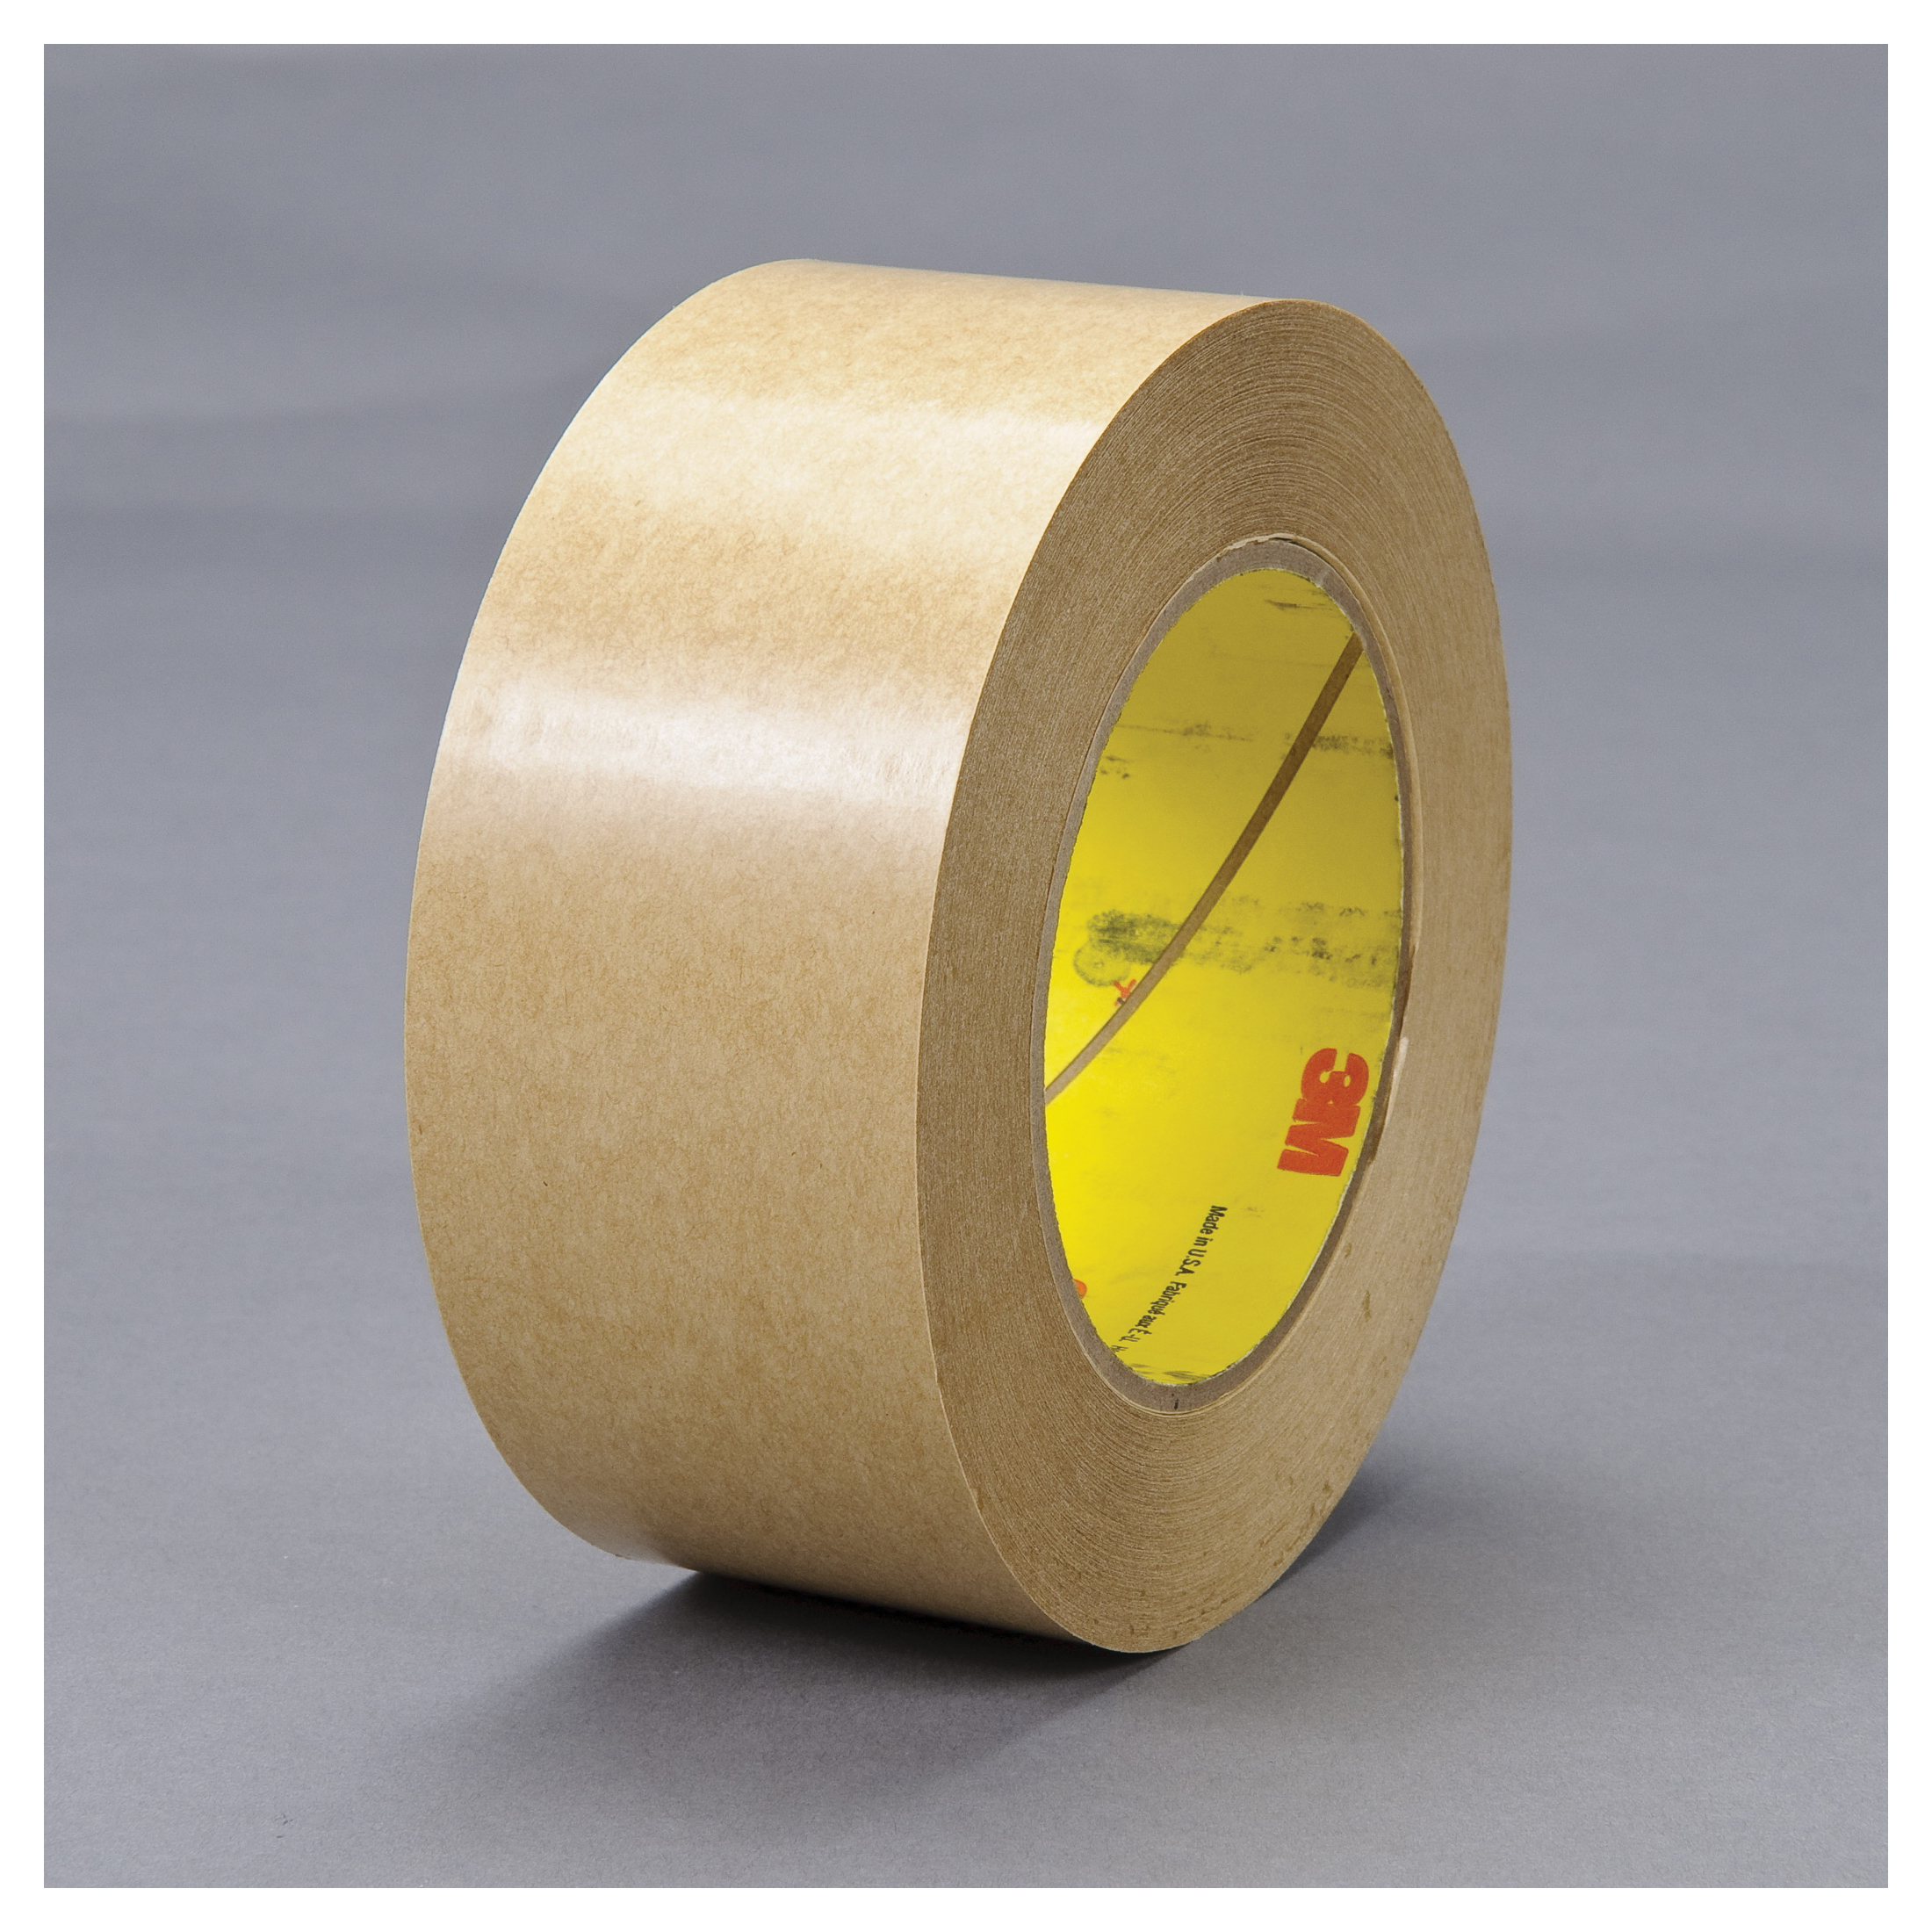 3M™ 021200-14056 Fibered General Purpose Adhesive Transfer Tape, 60 yd L x 48 in W, 2 mil THK, 2 mil 400 Acrylic Adhesive, Clear